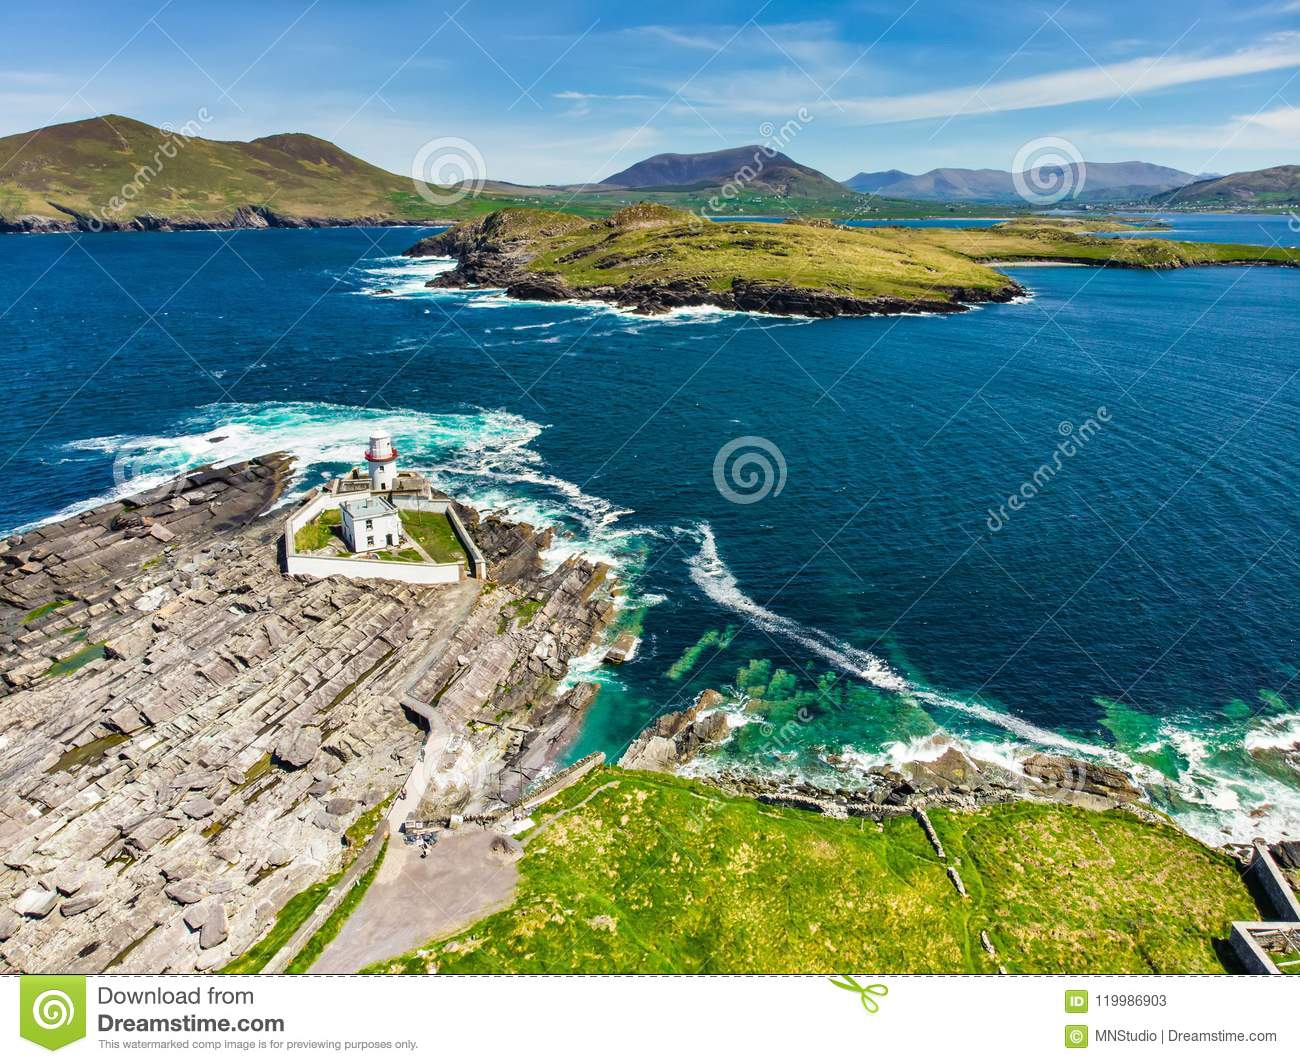 Beautiful view of Valentia Island Lighthouse at Cromwell Point. Locations worth visiting on the Wild Atlantic Way.